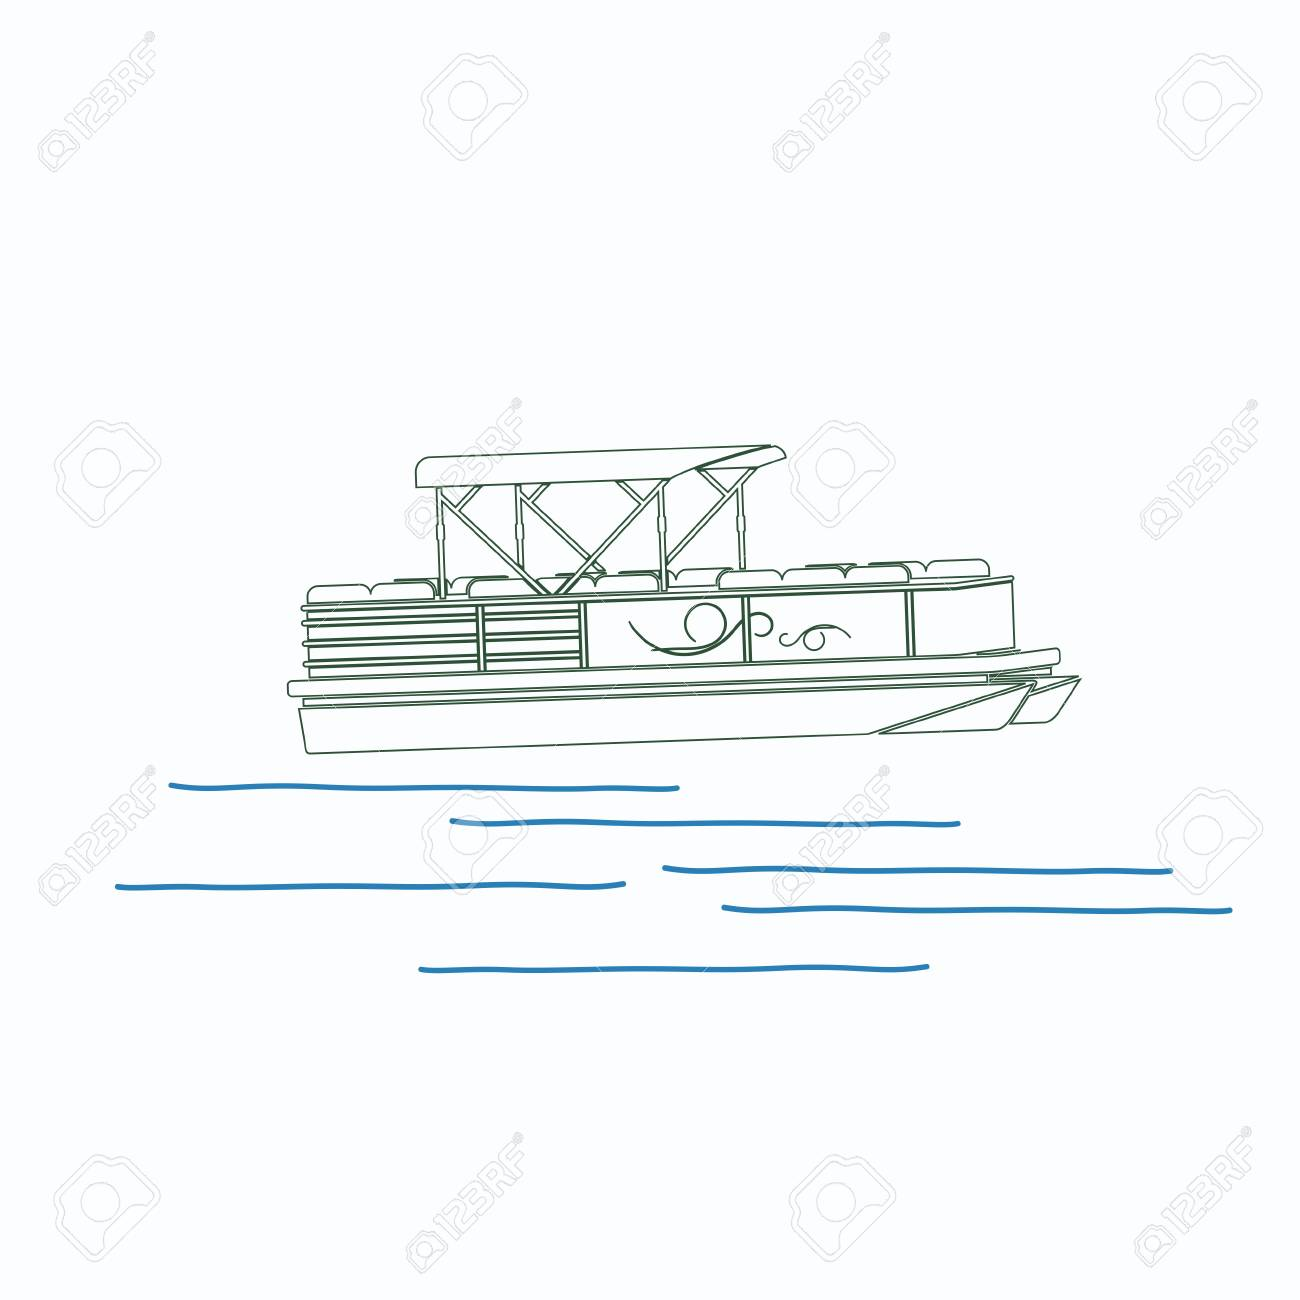 hight resolution of editable pontoon boat vector illustration in outline style stock vector 89094084